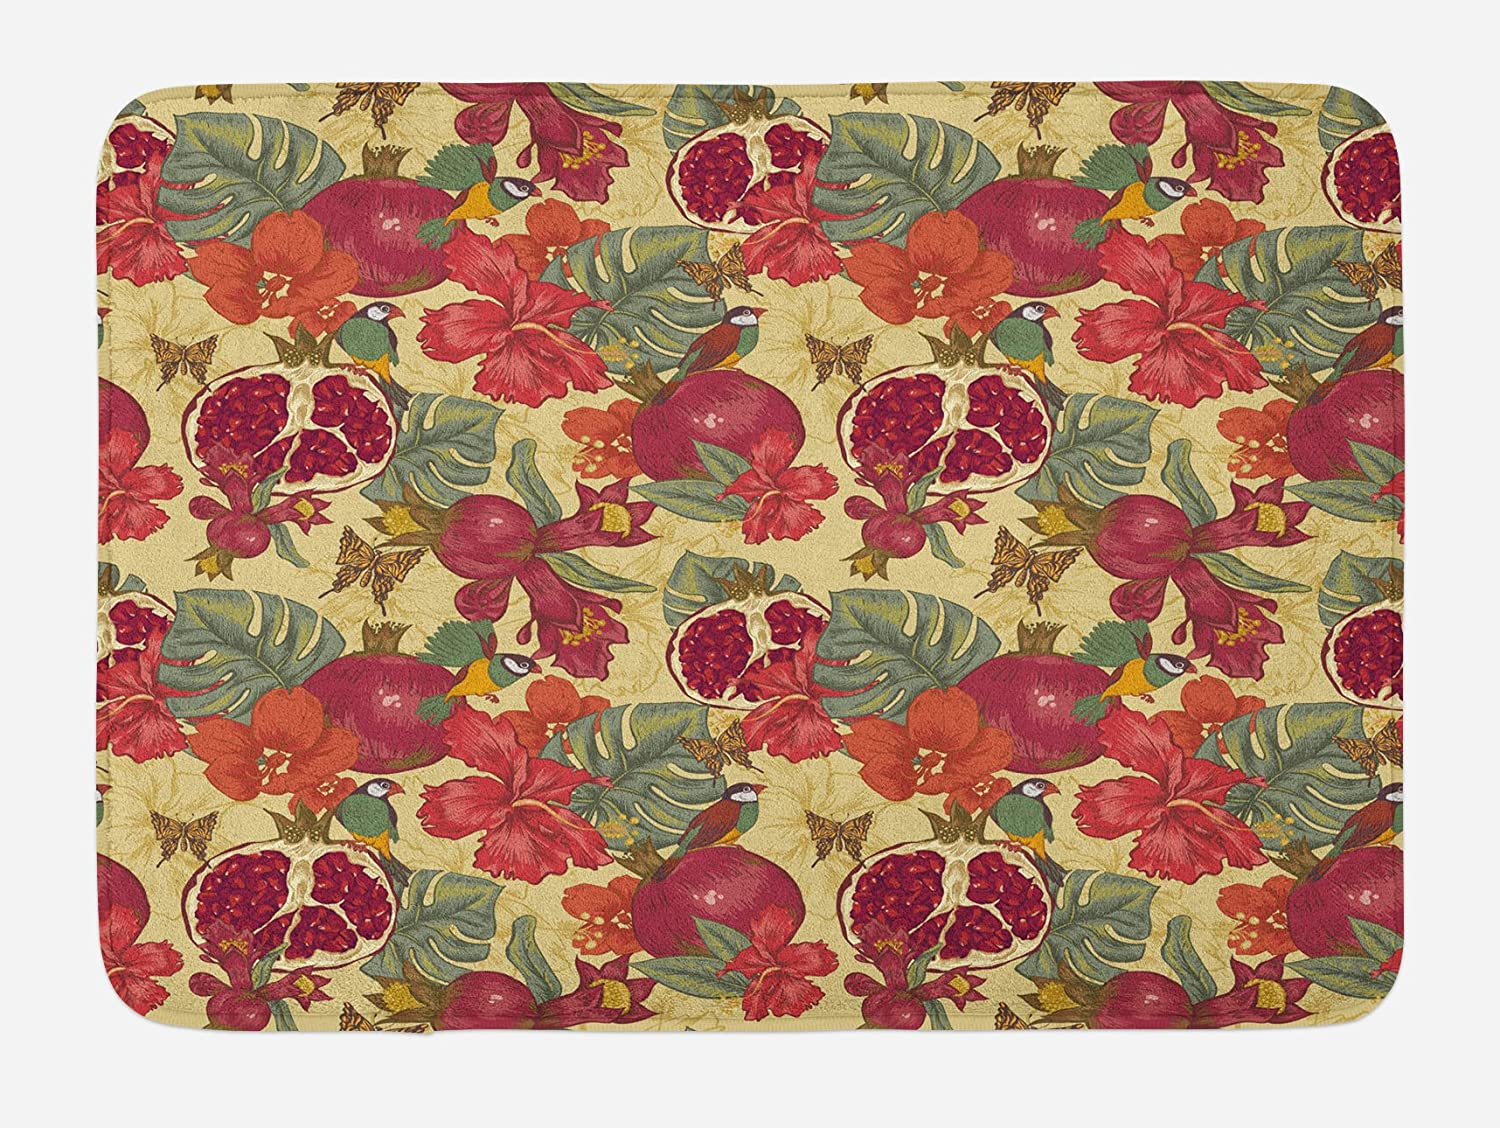 Ambesonne Red Bath Mat, Natural Tropical and Exotic Birds Butterflies Flowers and Pomegranate Illustration, Plush Bathroom Decor Mat with Non Slip Backing, 29.5 X 17.5, Red and Beige